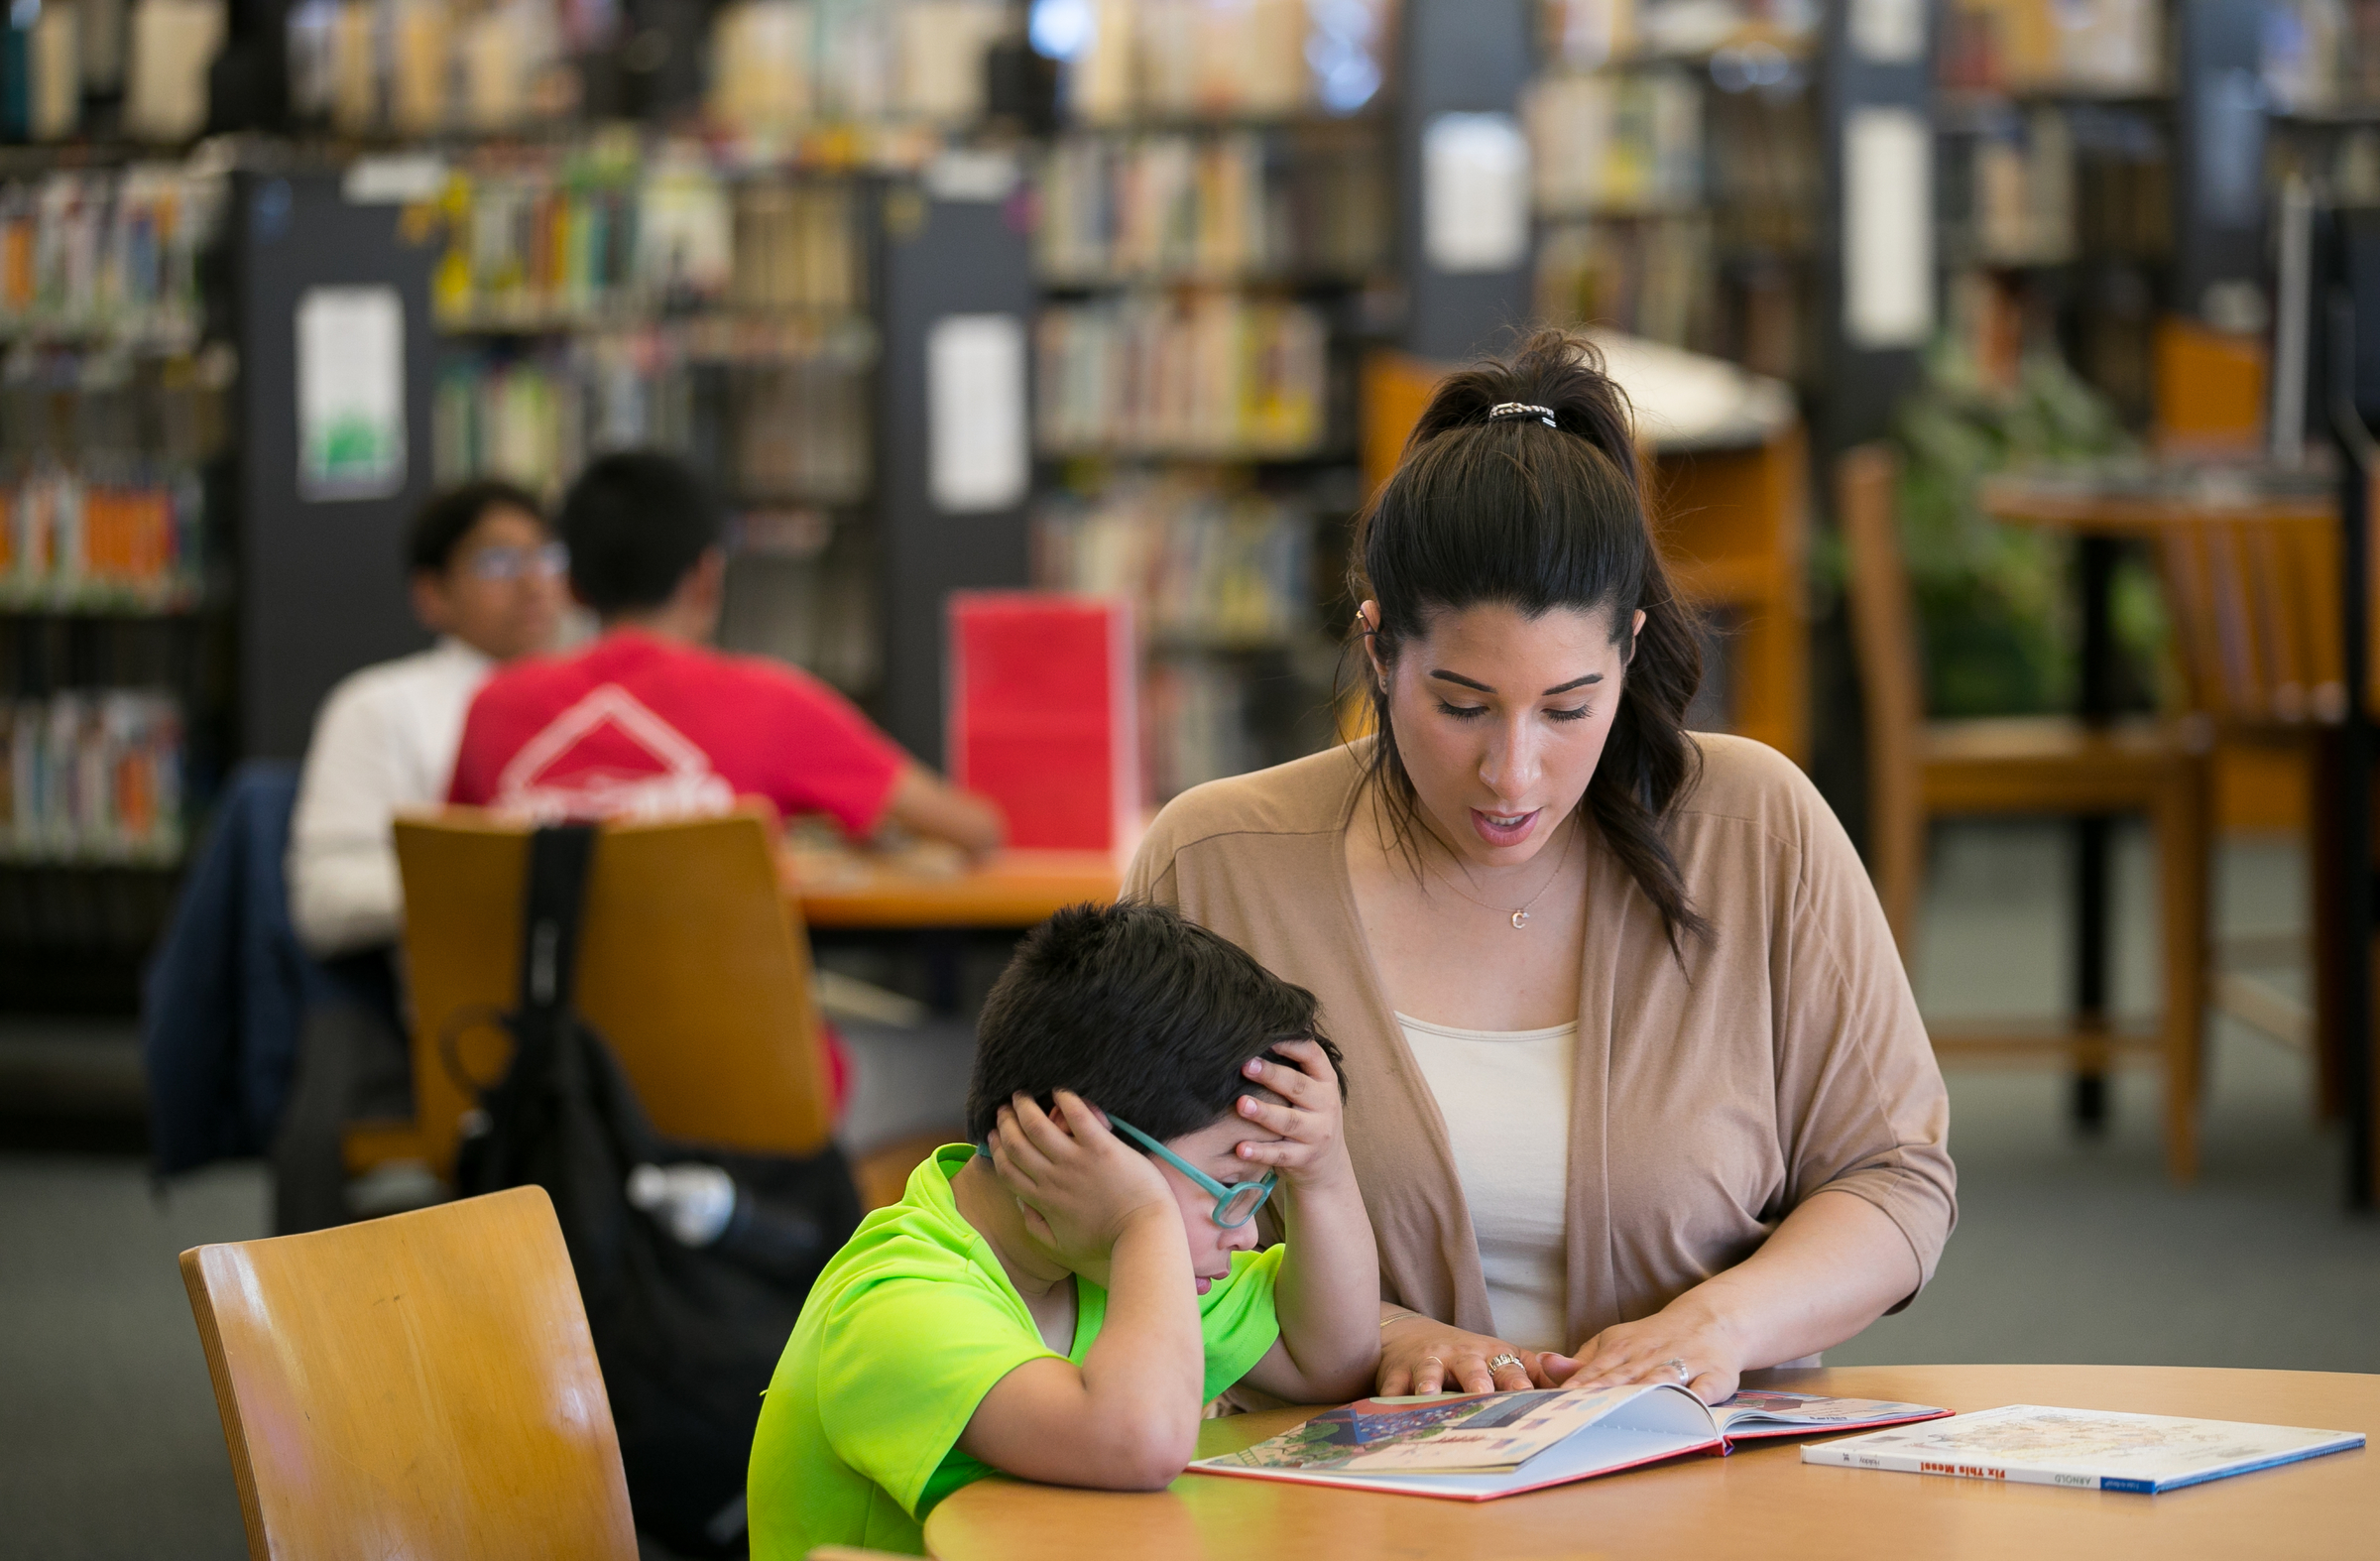 Cristine Gonzalez, right, does reading homework with her six-year-old son Dean Pagan, left, at their local library branch, Northeast Philadelphia, Wednesday, May 2, 2018. Dean was severely lead poisoned at Comly Elementary School. JESSICA GRIFFIN / Staff Photographer